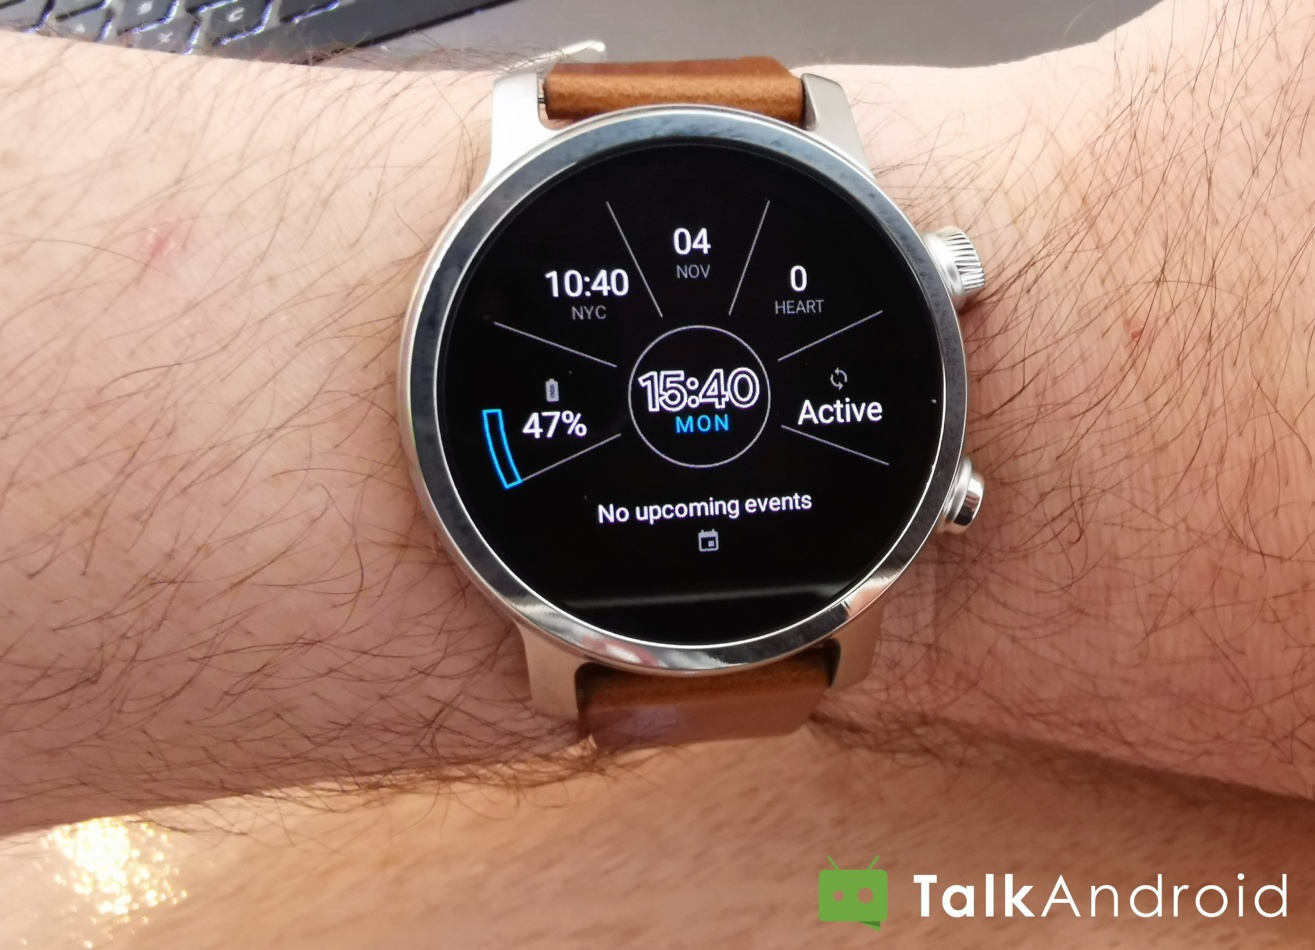 [Deal] The Moto 360 (3rd-Gen) is reduced to just $199 on Amazon - TalkAndroid.com